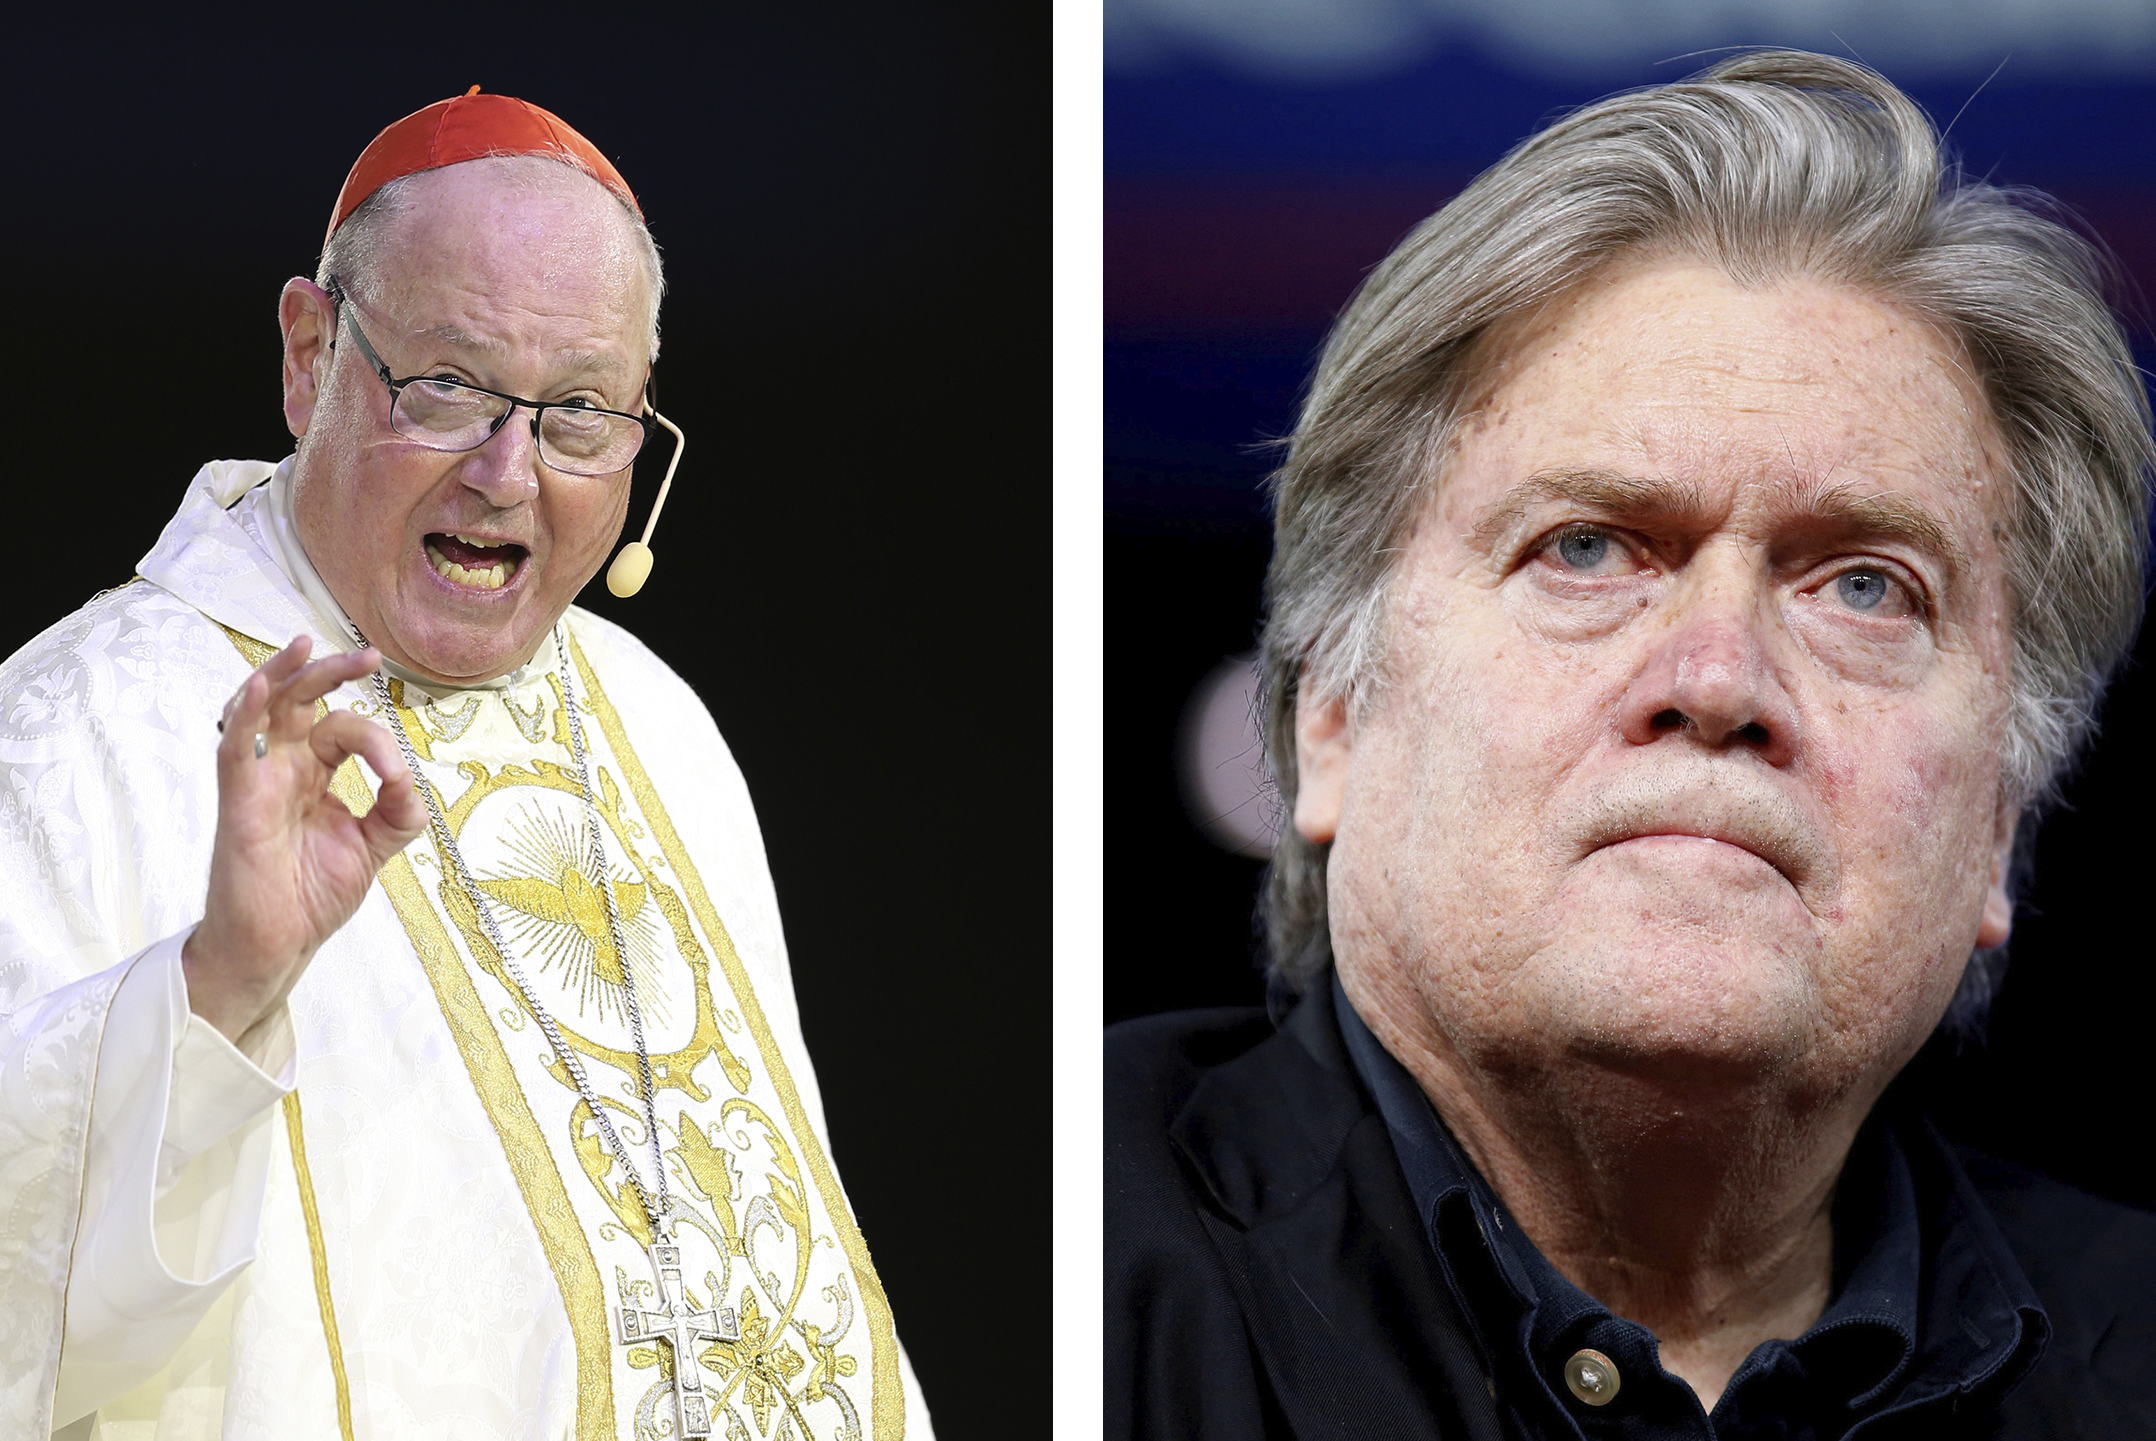 Catholic Church Backed DACA Because it Needs 'Illegal Aliens': Bannon